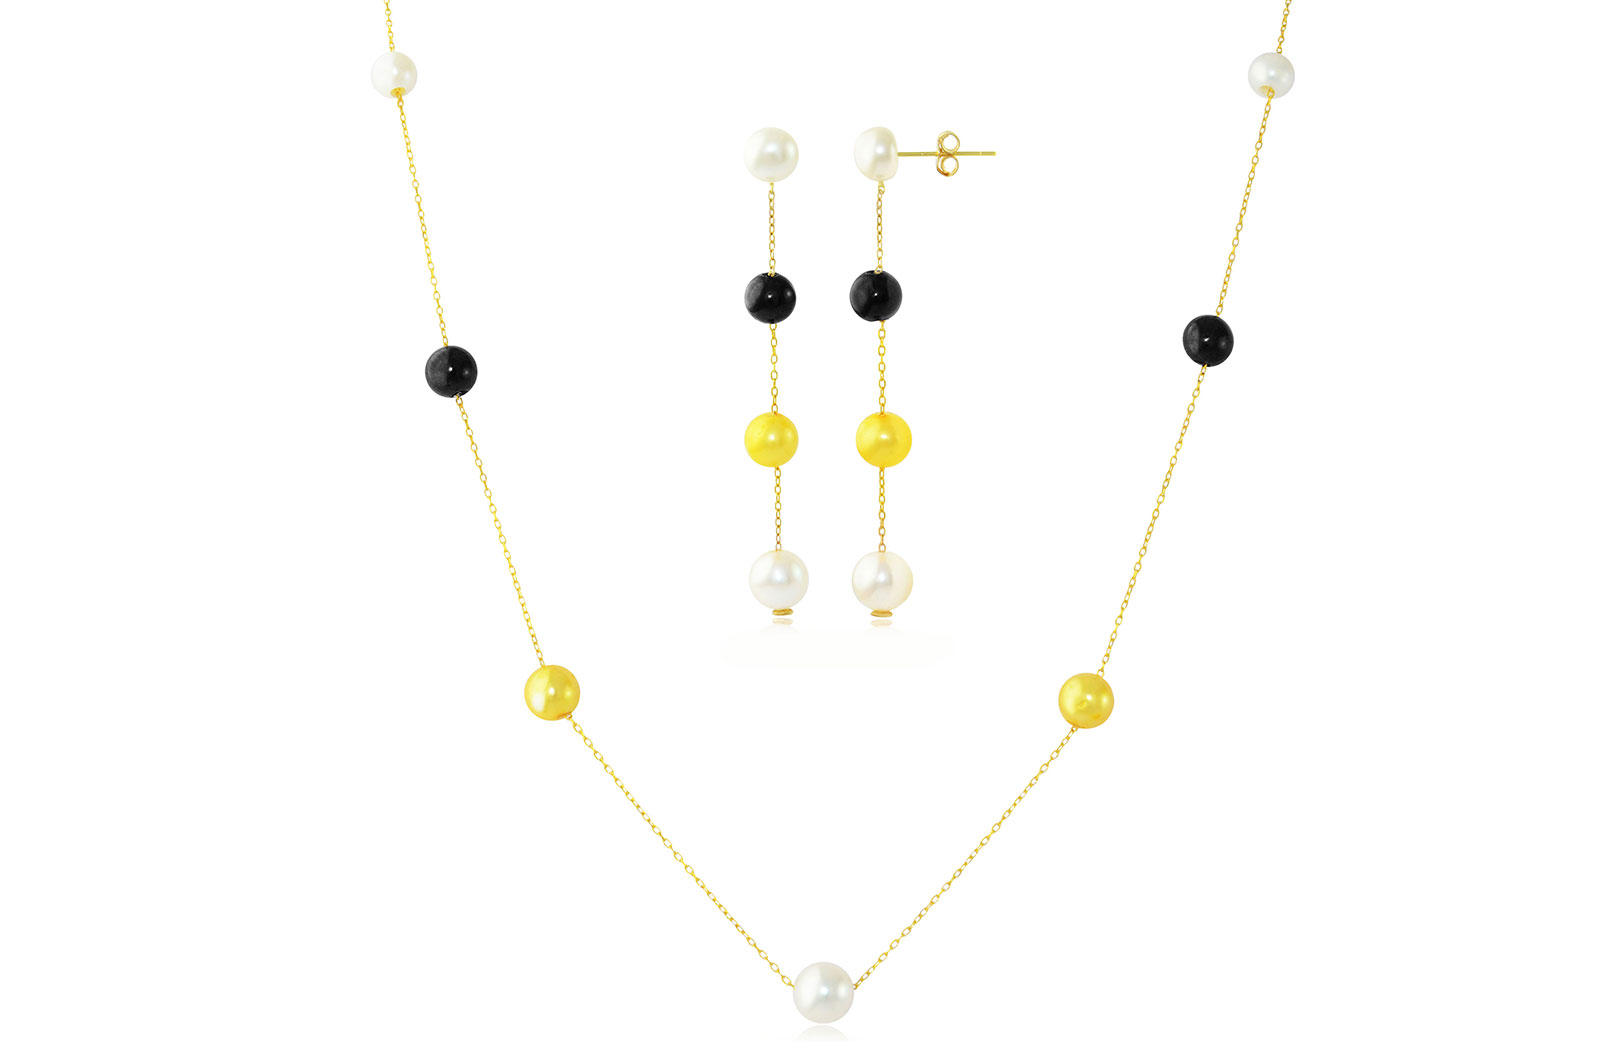 Vp Jewels 18K Solid Gold 5-7MM Gradual  Built-in Gold- Yellow Pearl Necklace and earrings Set